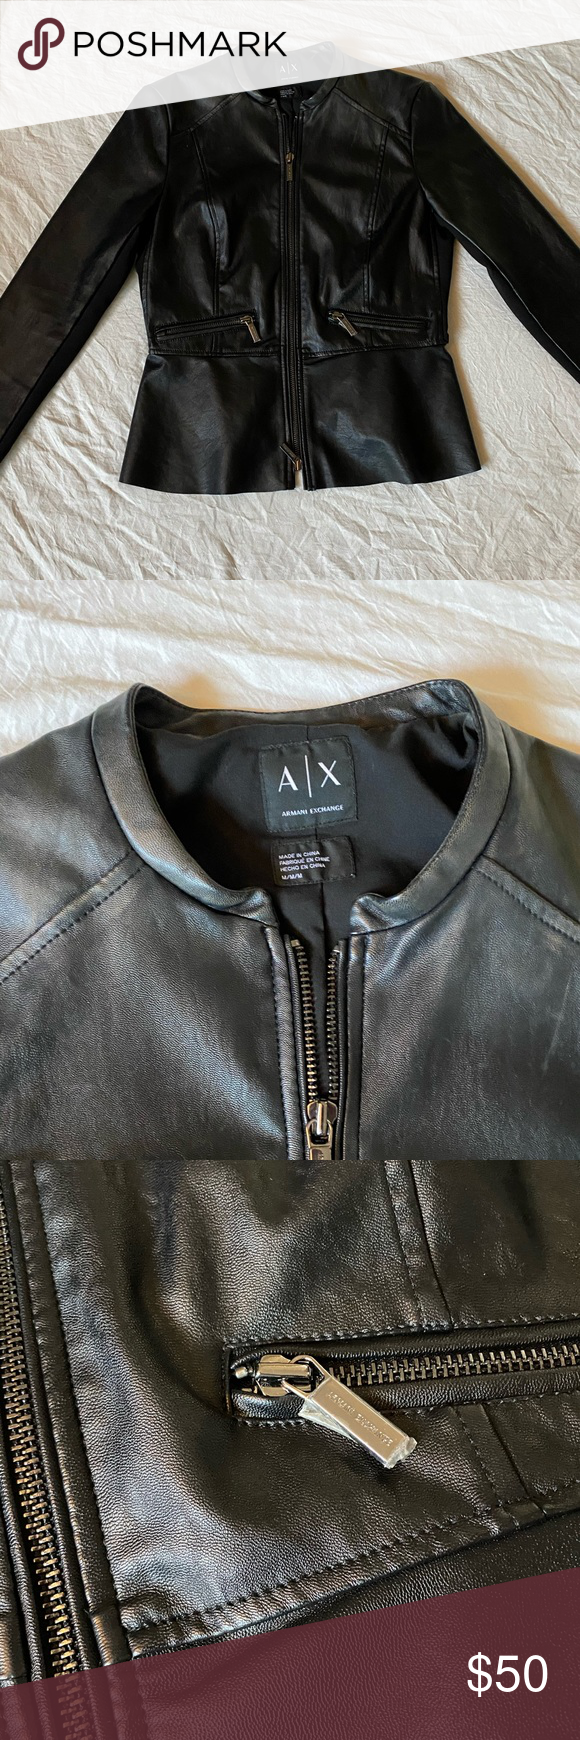 A/X Armani exchange leather jacket sz M in 2020 Leather